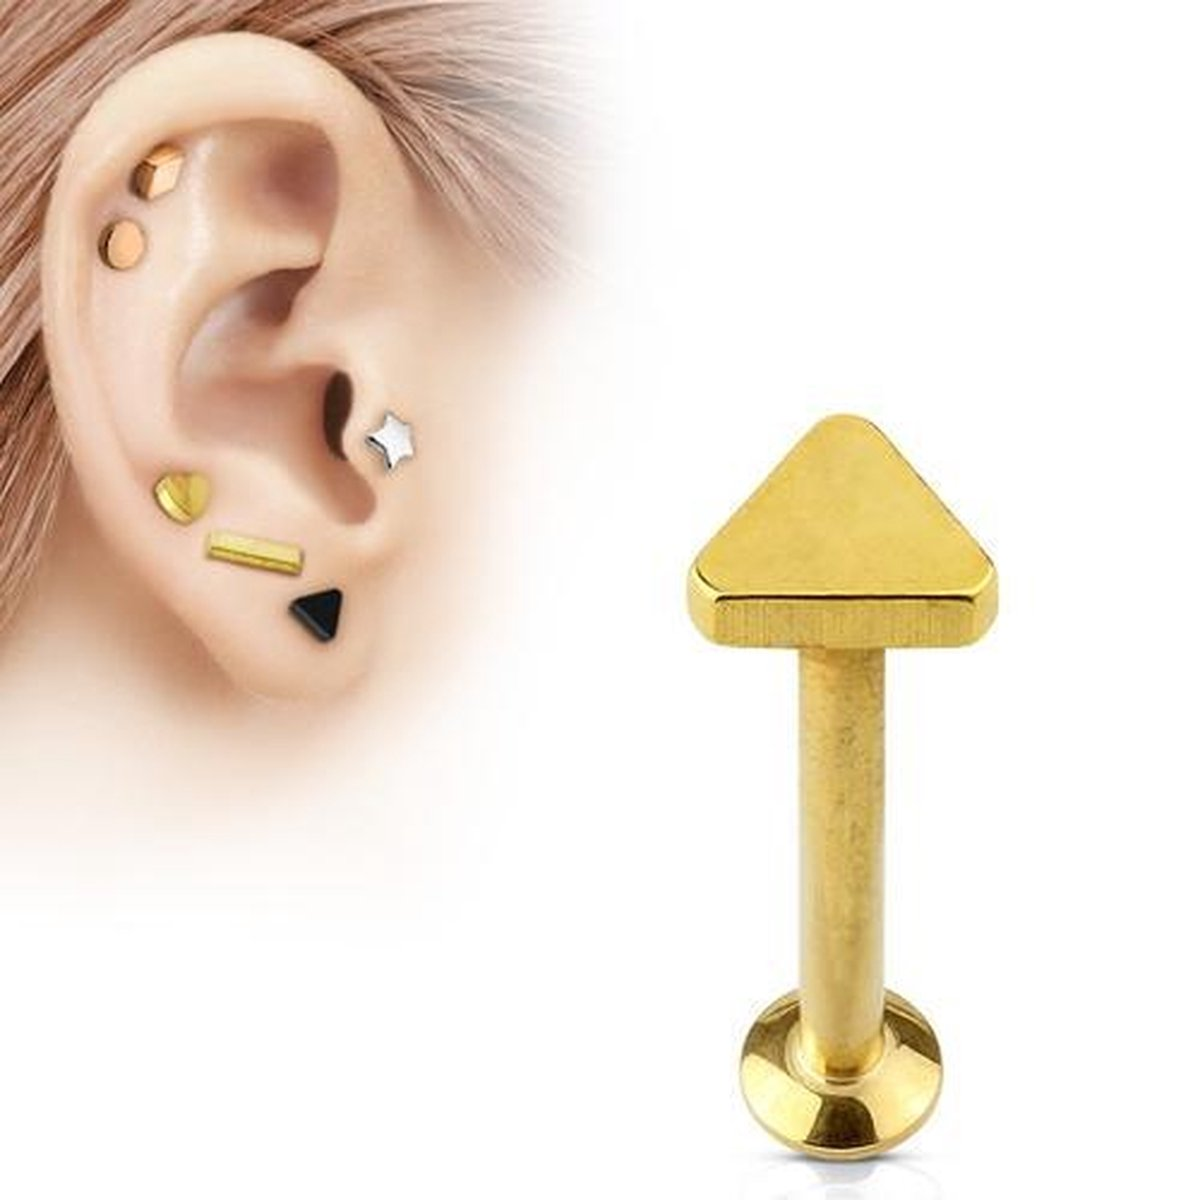 Tragus piercing triangle gold plated 6mm - LMPiercings NL